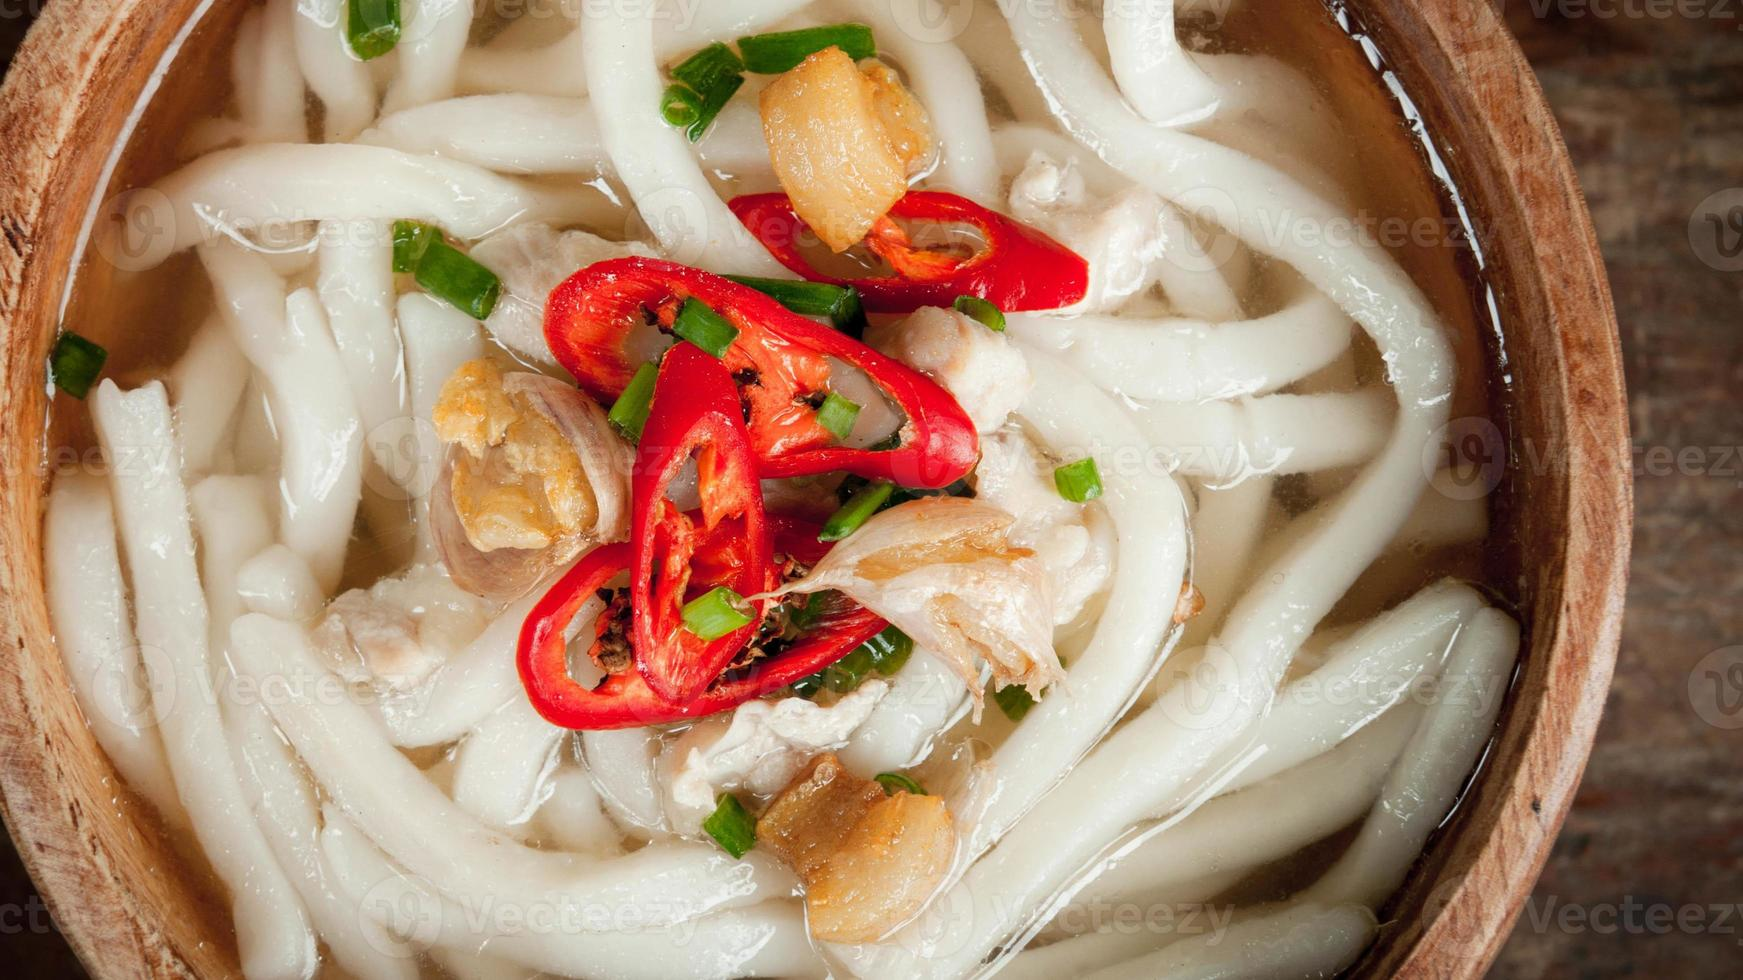 udon noodle in wood bowl on wooden floor background photo